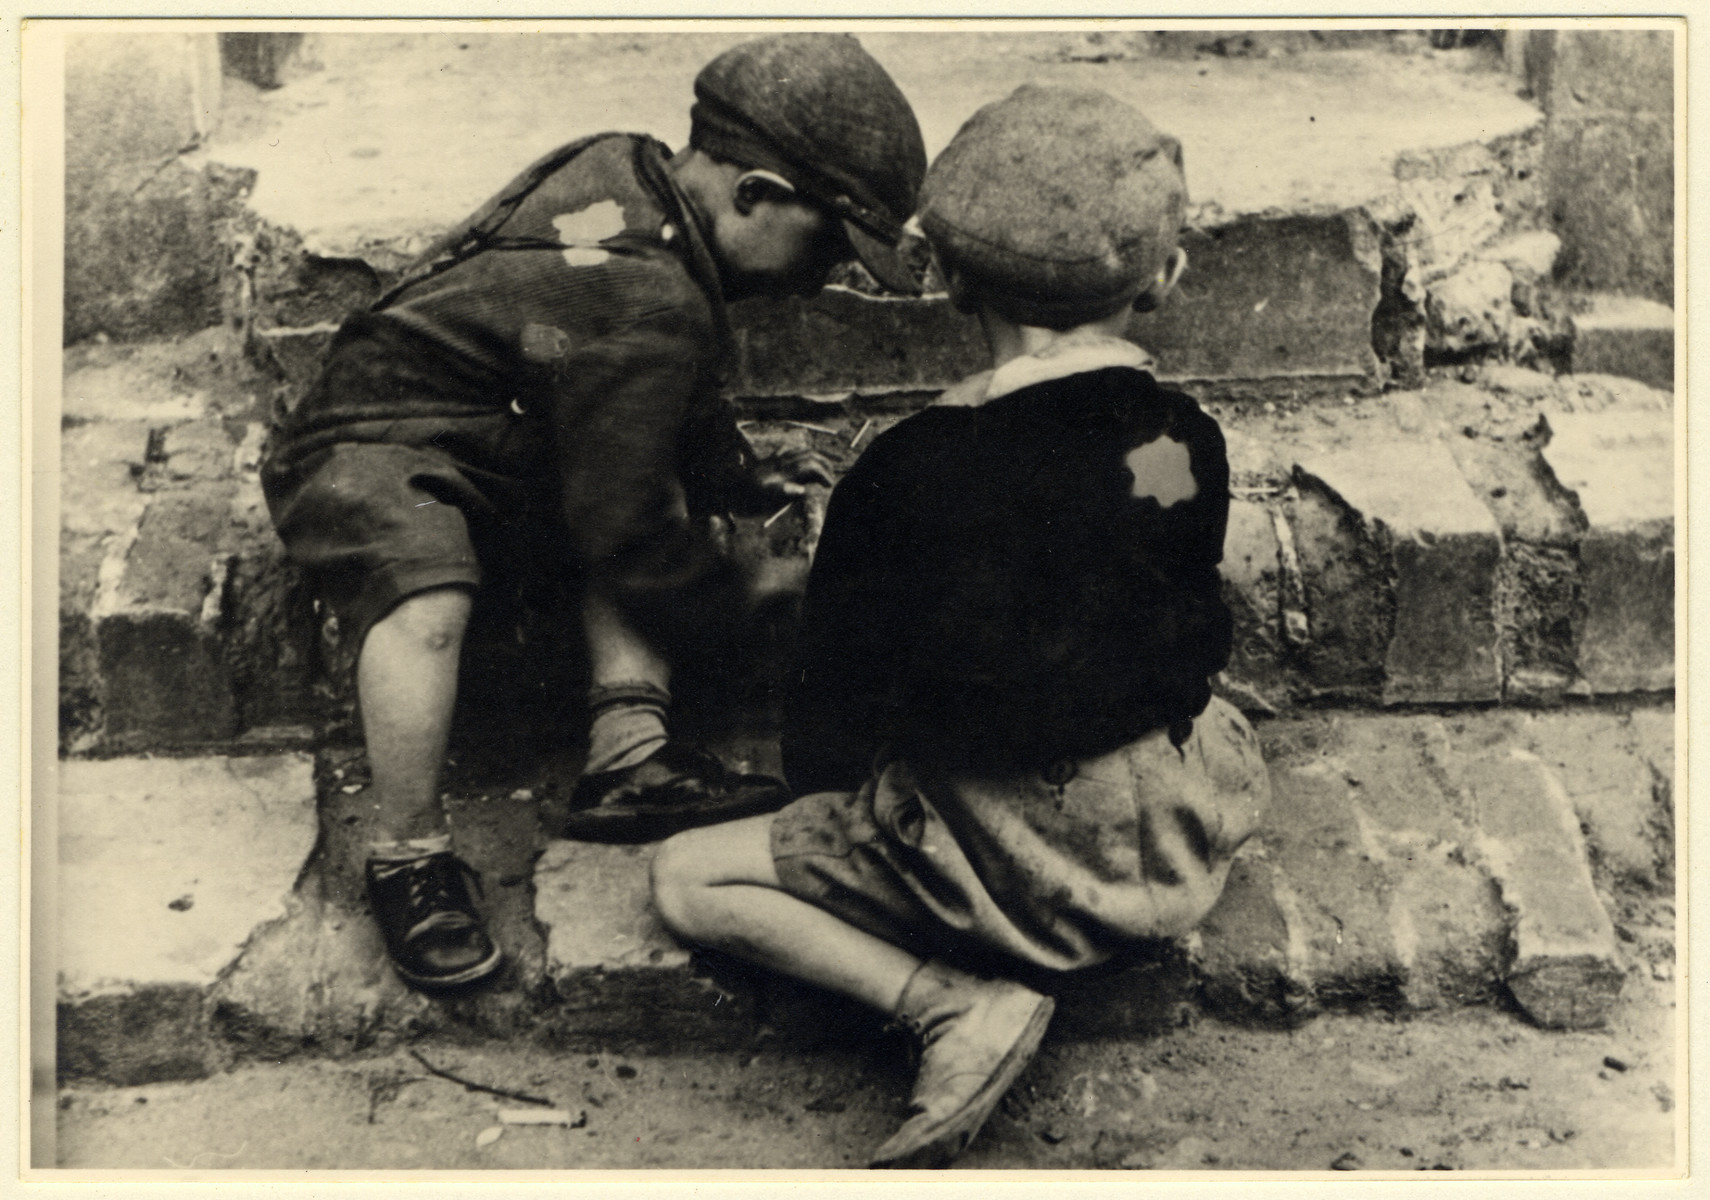 Two children of the Lodz ghetto play on the doorstep of a house.